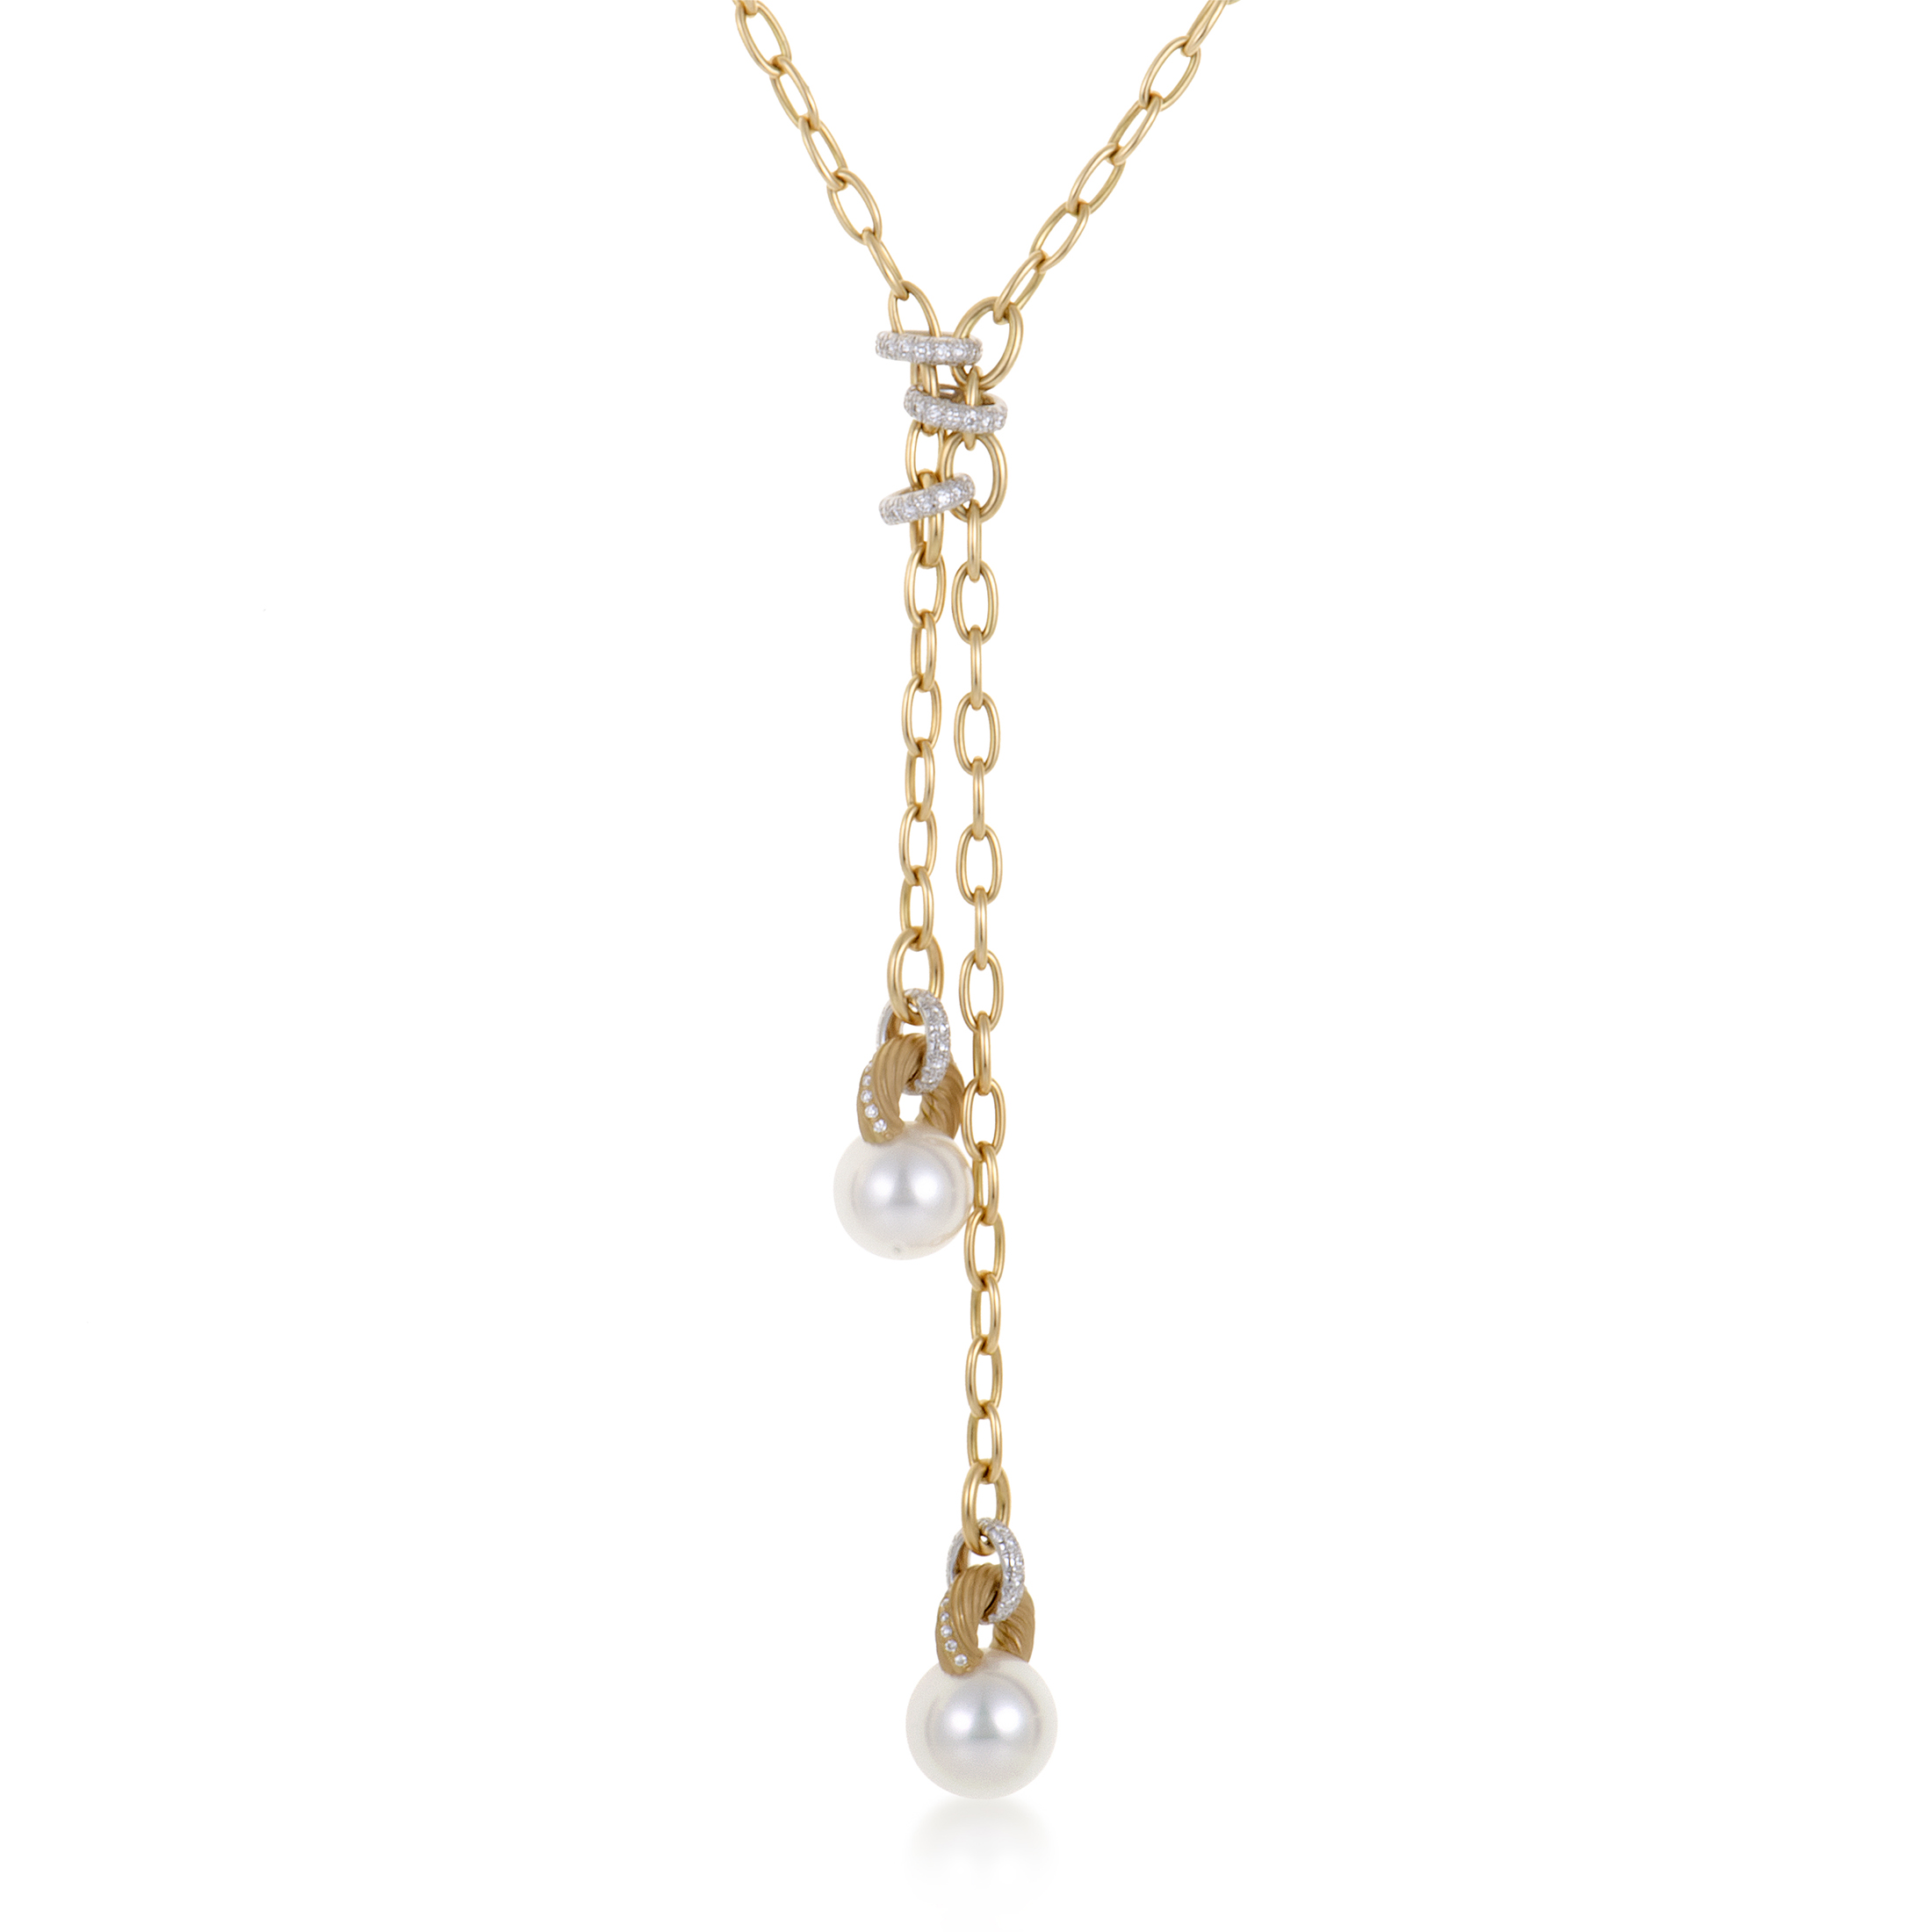 White Pearl Pendant Necklace: Mikimoto 18K Yellow And White Gold Diamond And Pearl